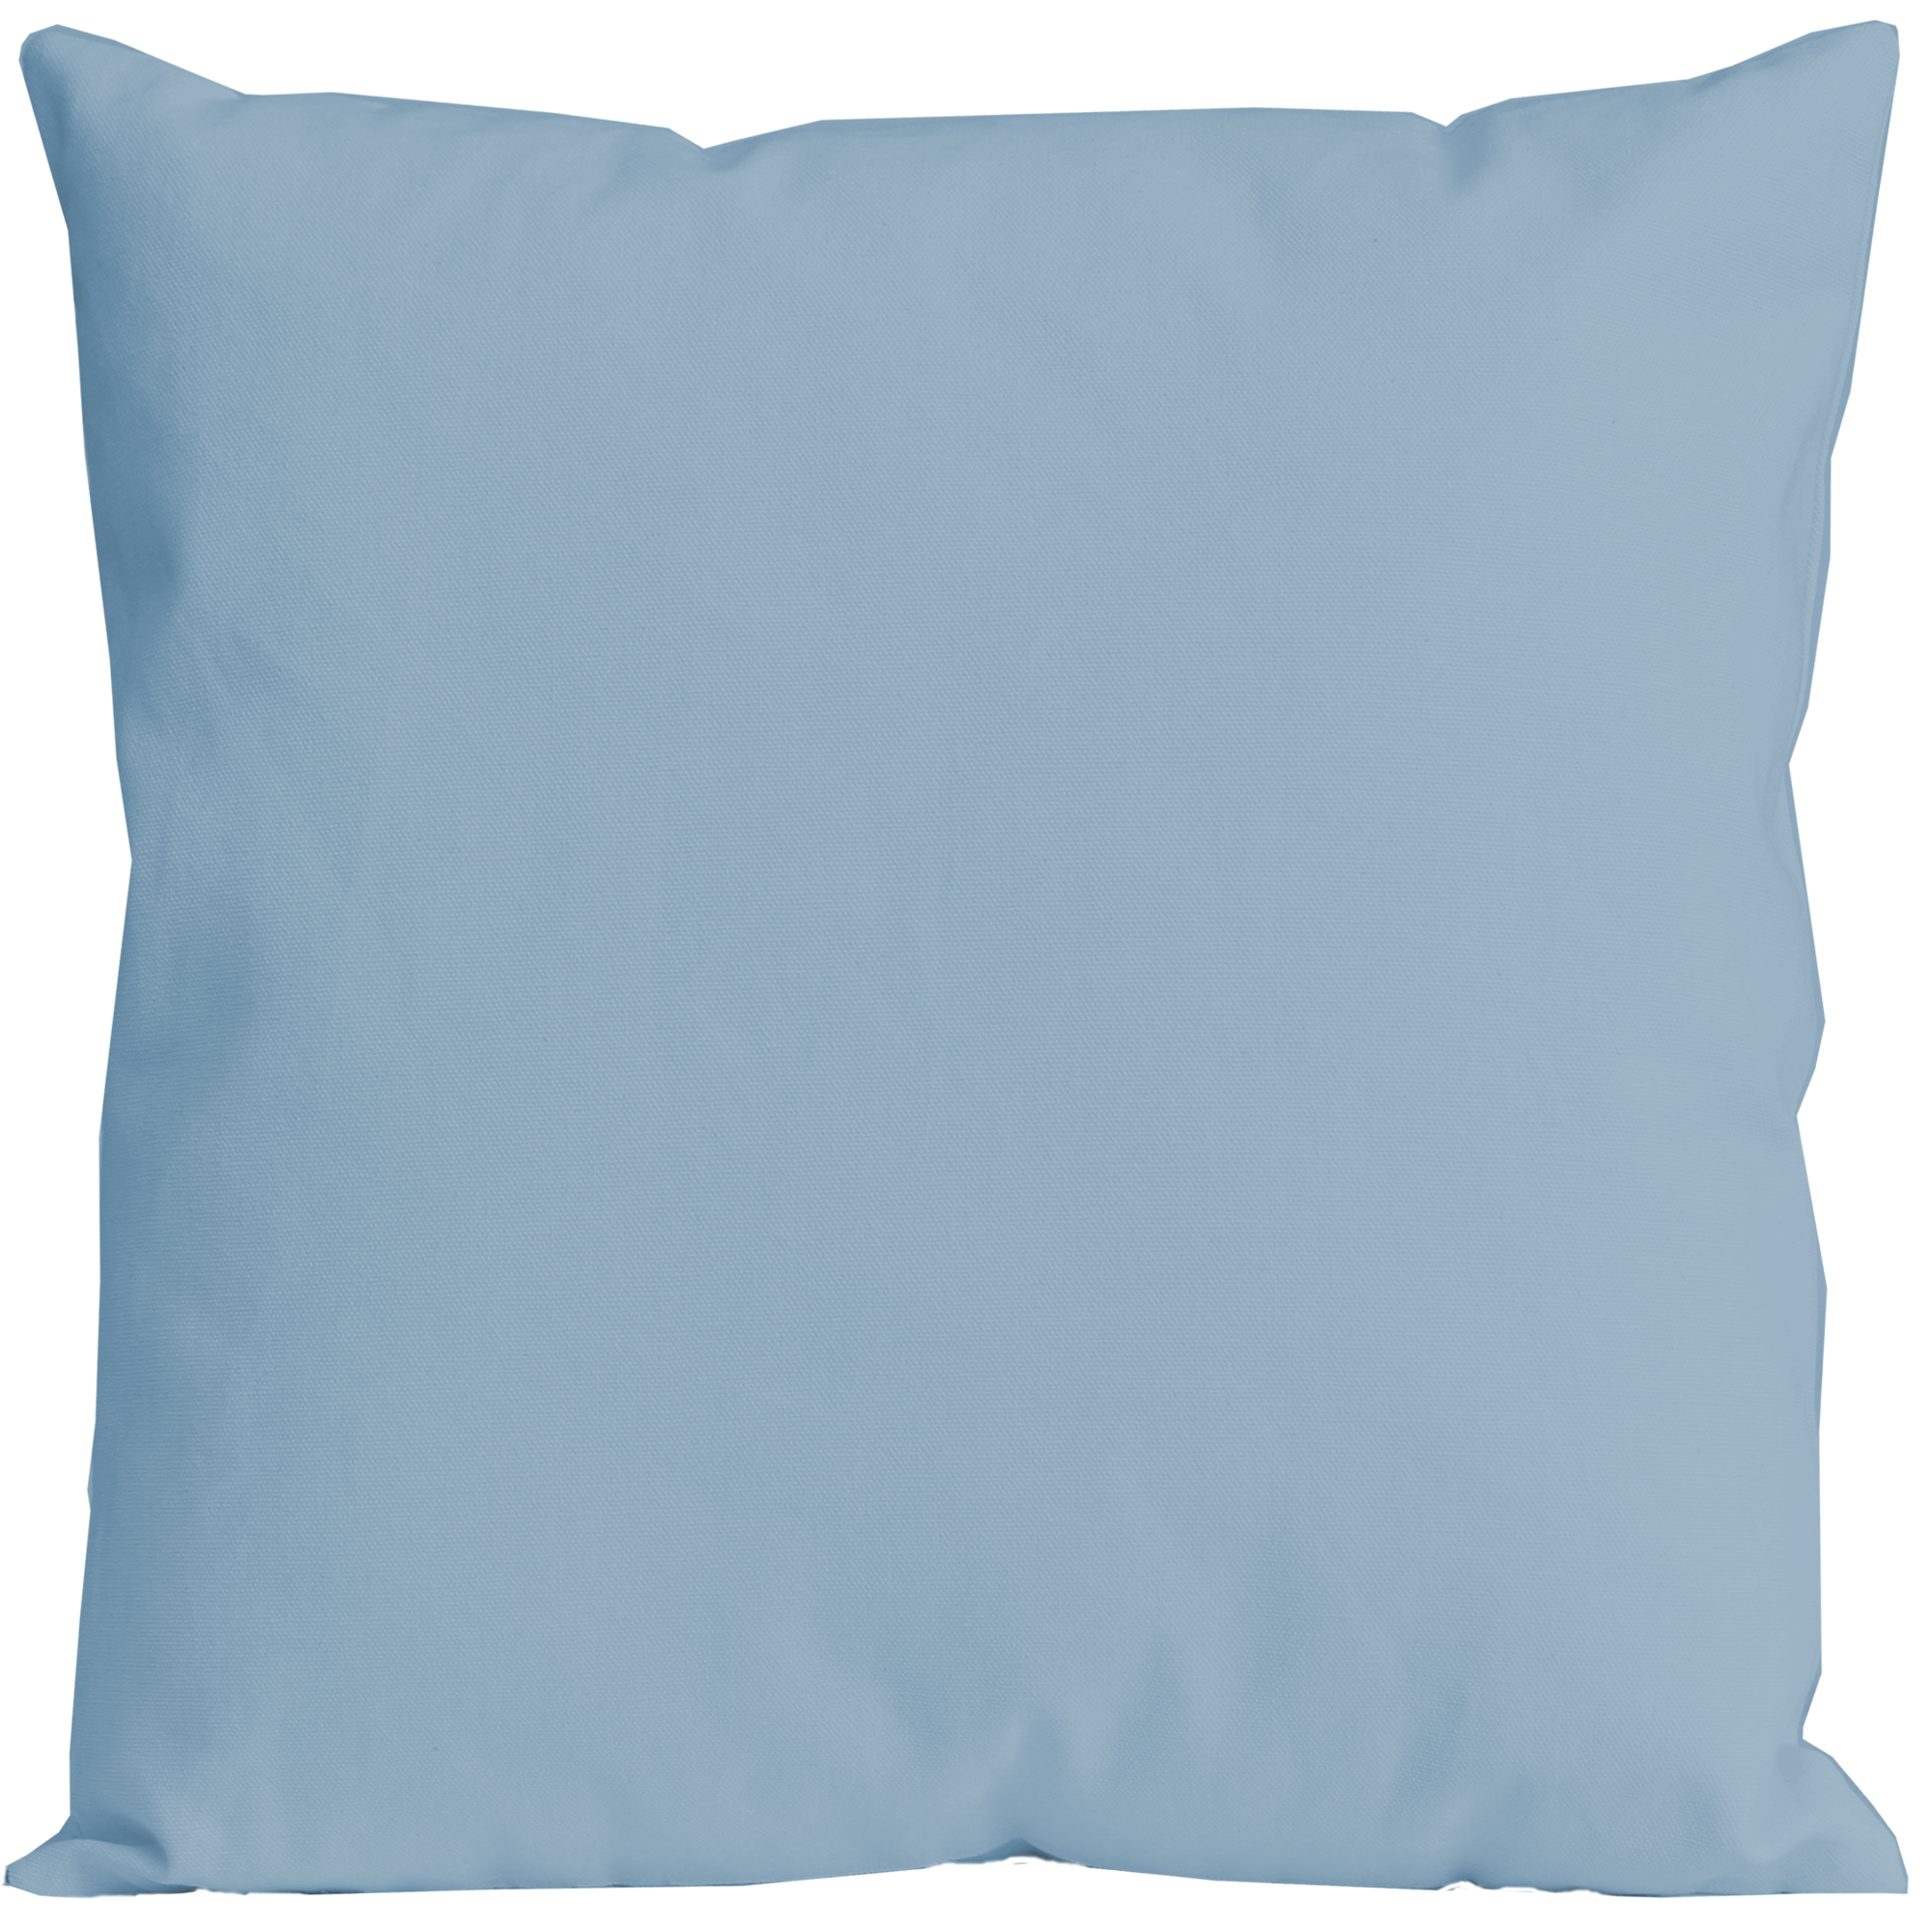 Png images free download. Pillow clipart fluffy pillow